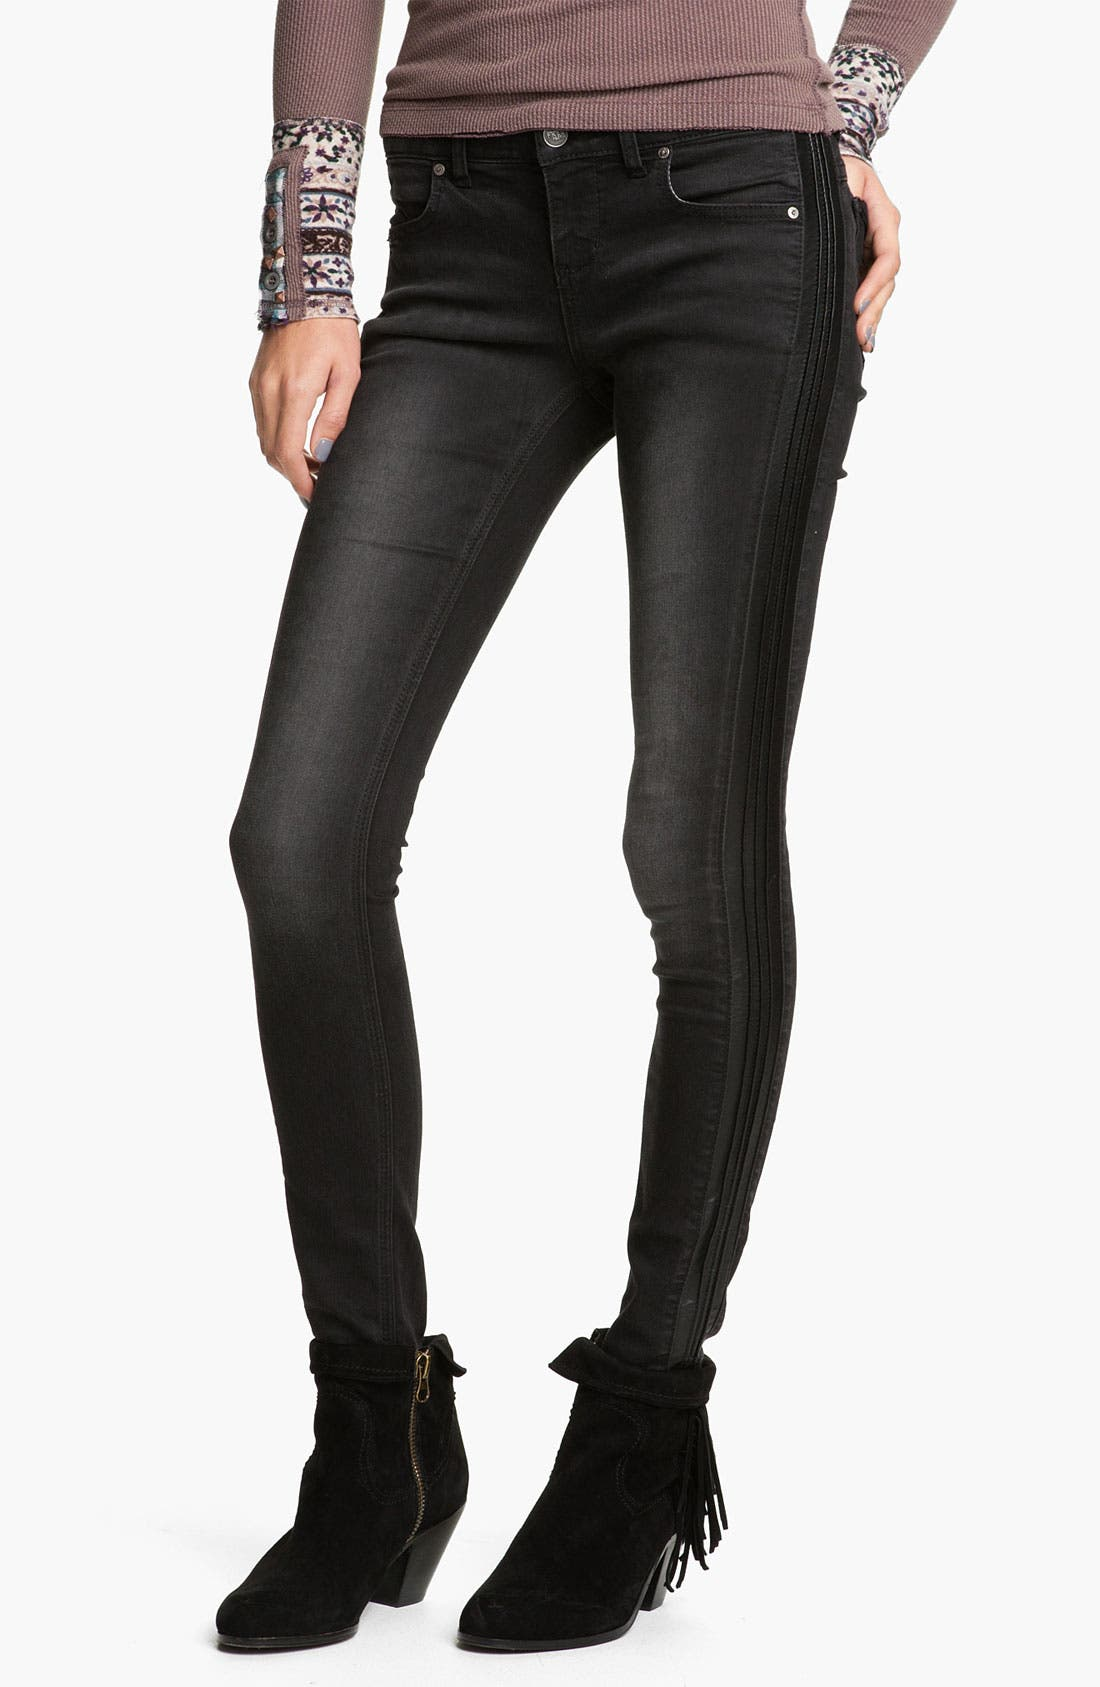 Main Image - Free People Faux Leather Trim Skinny Jeans (Abyss)